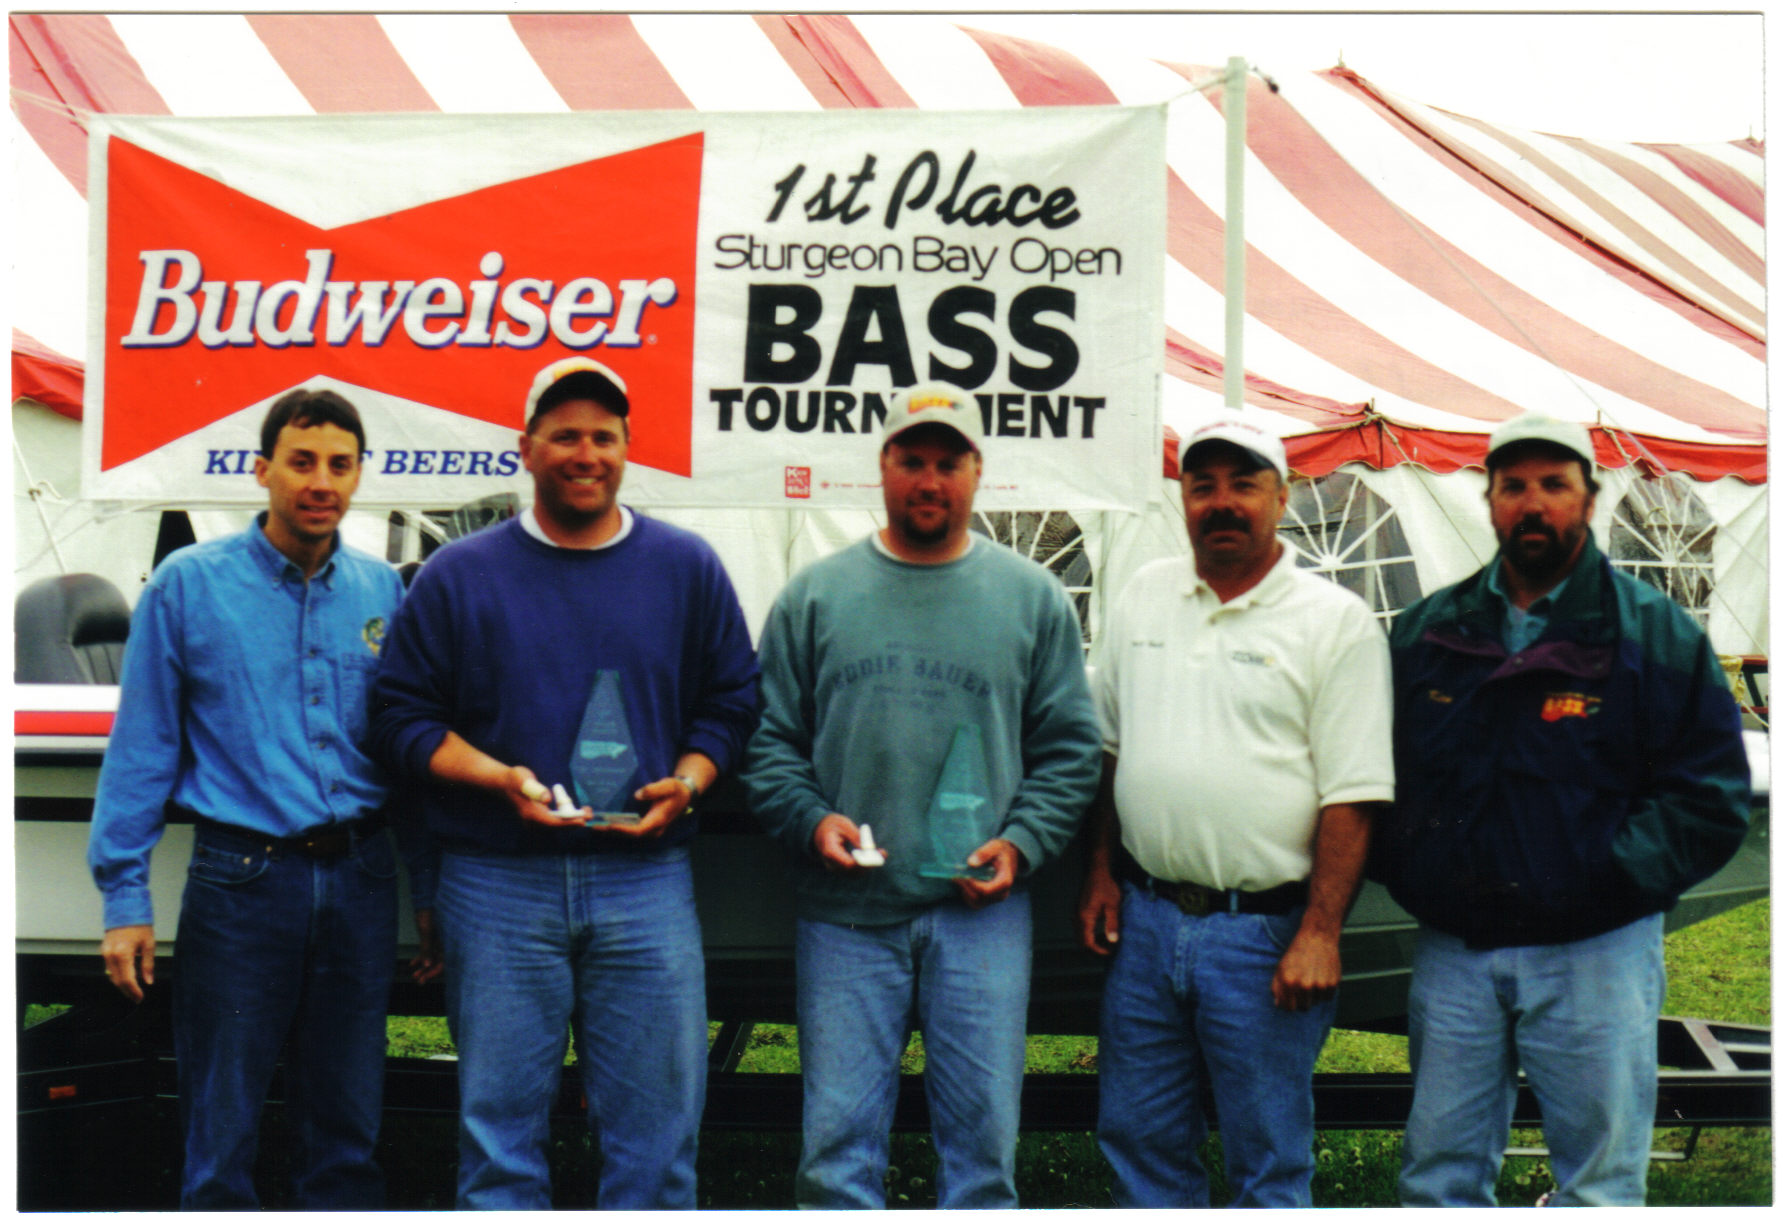 10th Annual Sturgeon Bay Open Bass Tournament